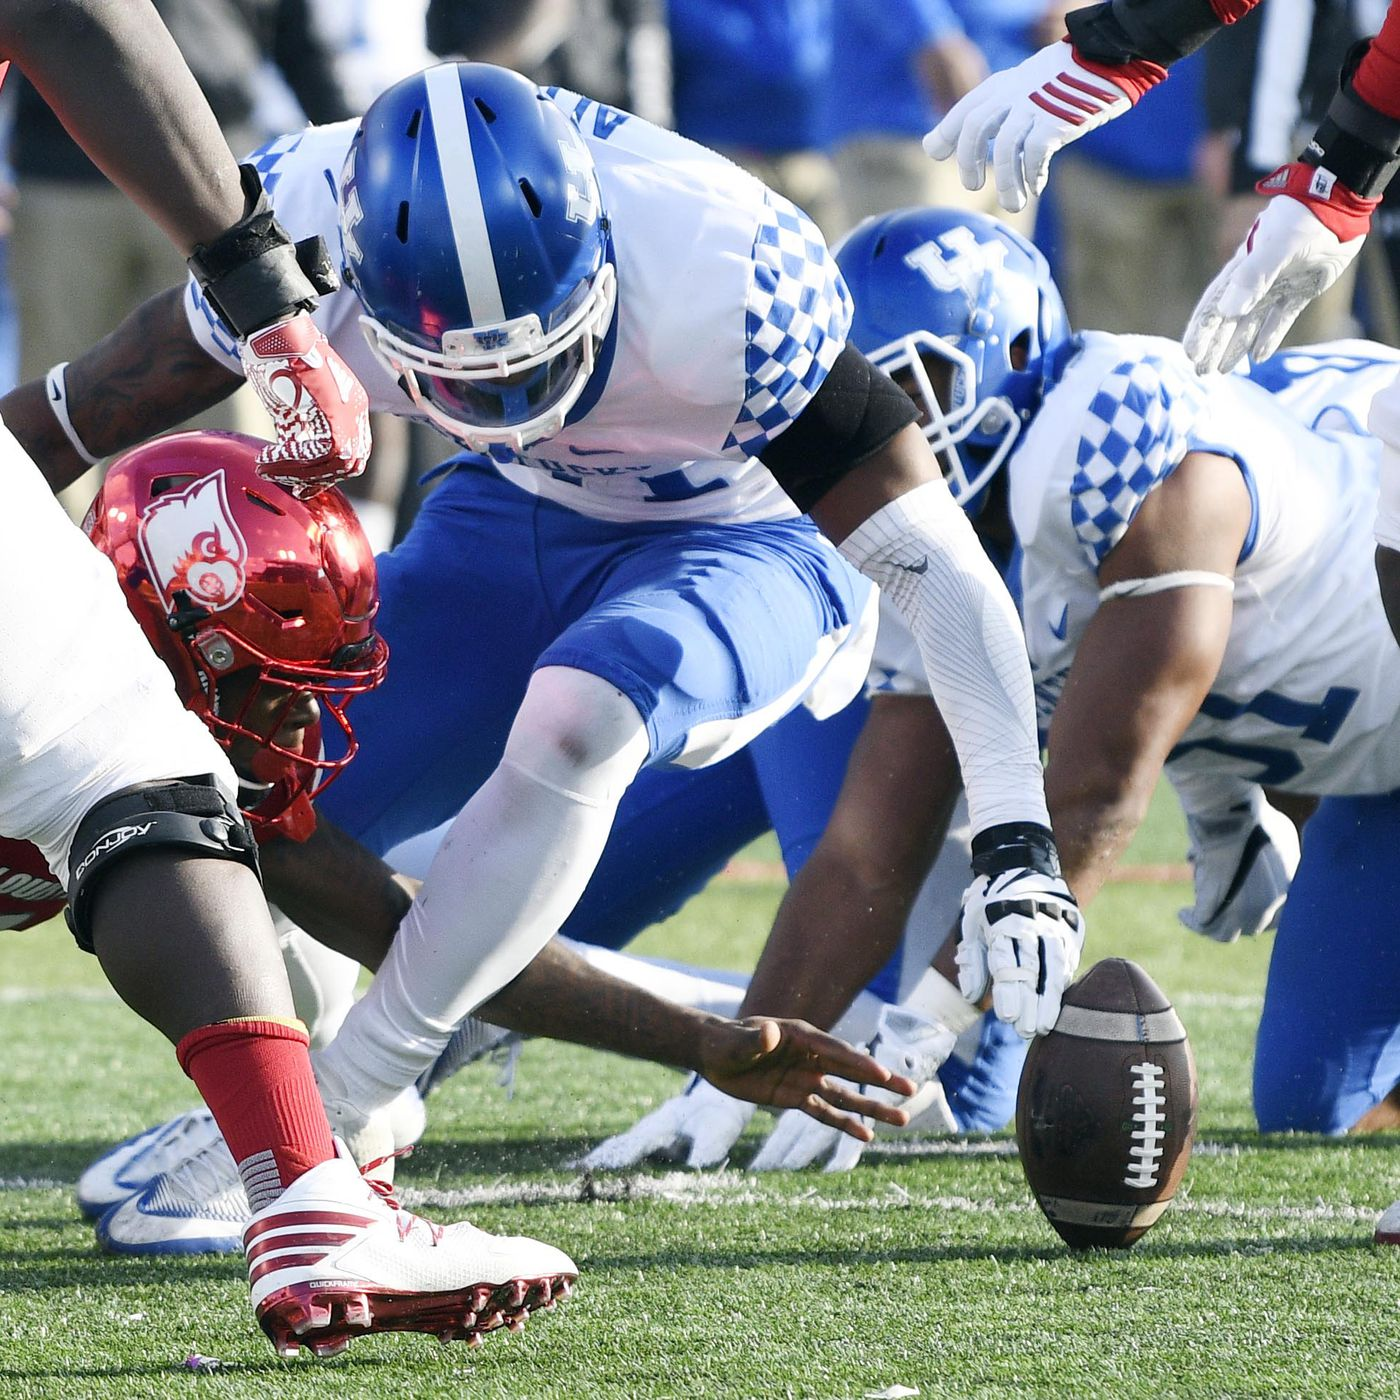 Kentucky Beating Louisville May Cost Lamar Jackson And Cardinals Dearly A Sea Of Blue